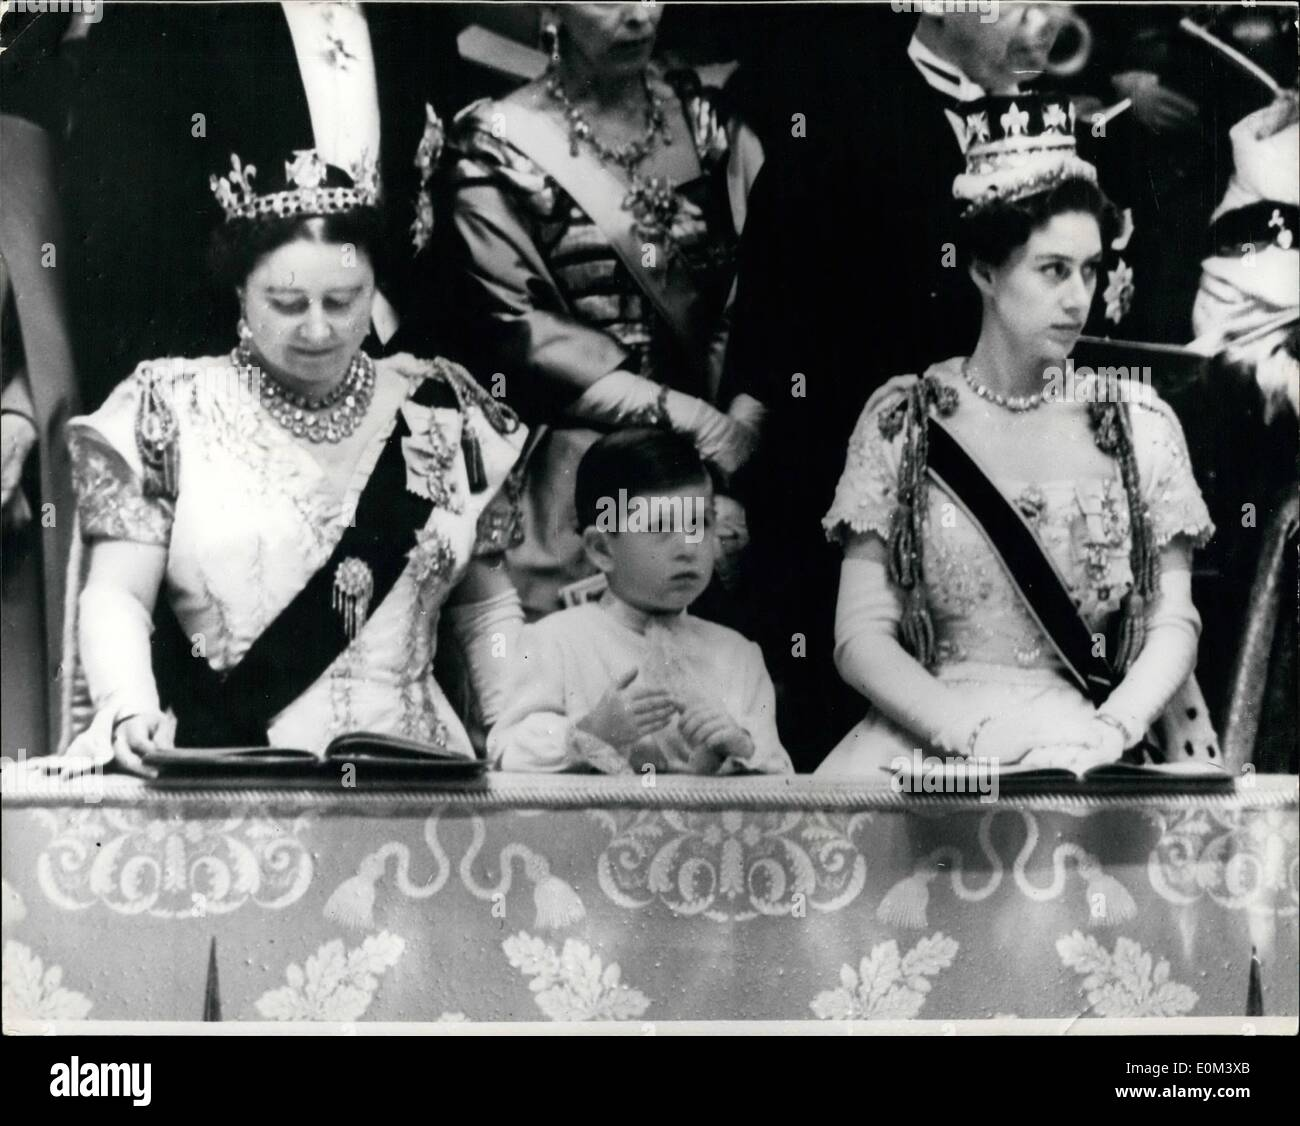 06, 1953 - Coronation of Queen Elizabeth II in Westminster Abbey, Prince  Charles watches the ceremony. Photo Shows: Prince